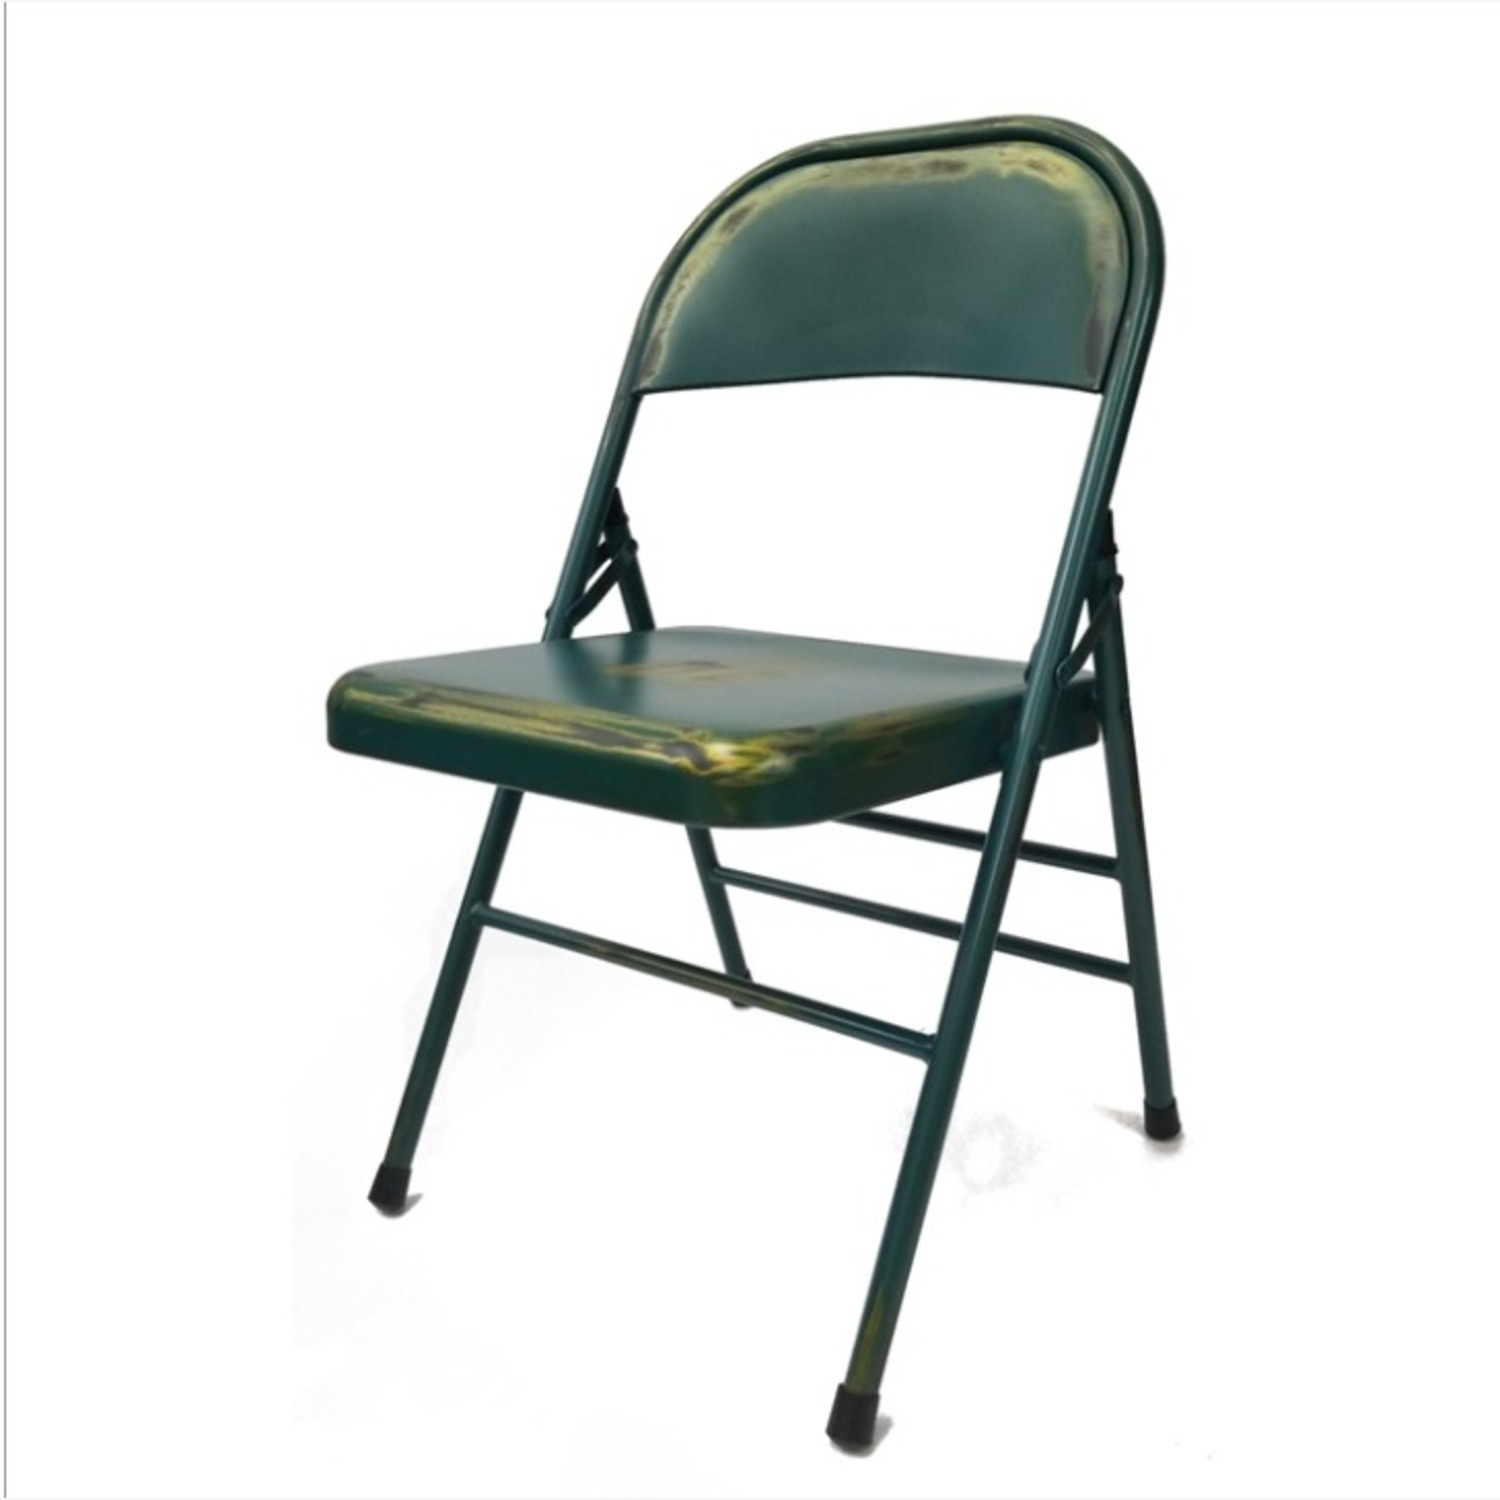 Folding Chair In Turquoise Powder Coated Finish - image-0